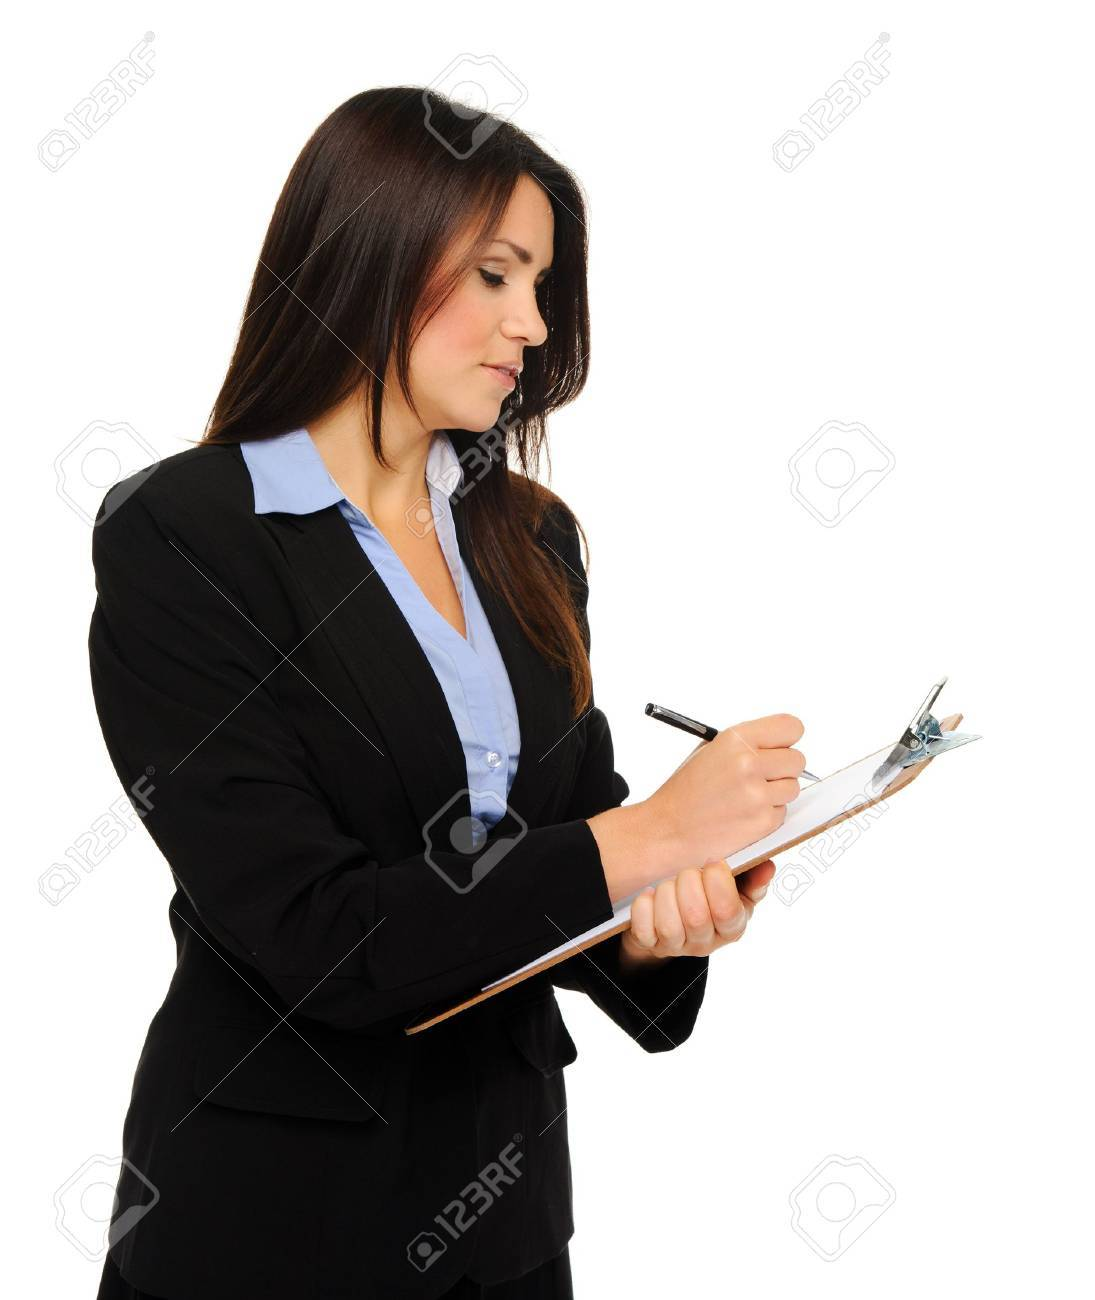 Researcher in formal business attire writes information on clipboard, isolated on white Stock Photo - 10802970